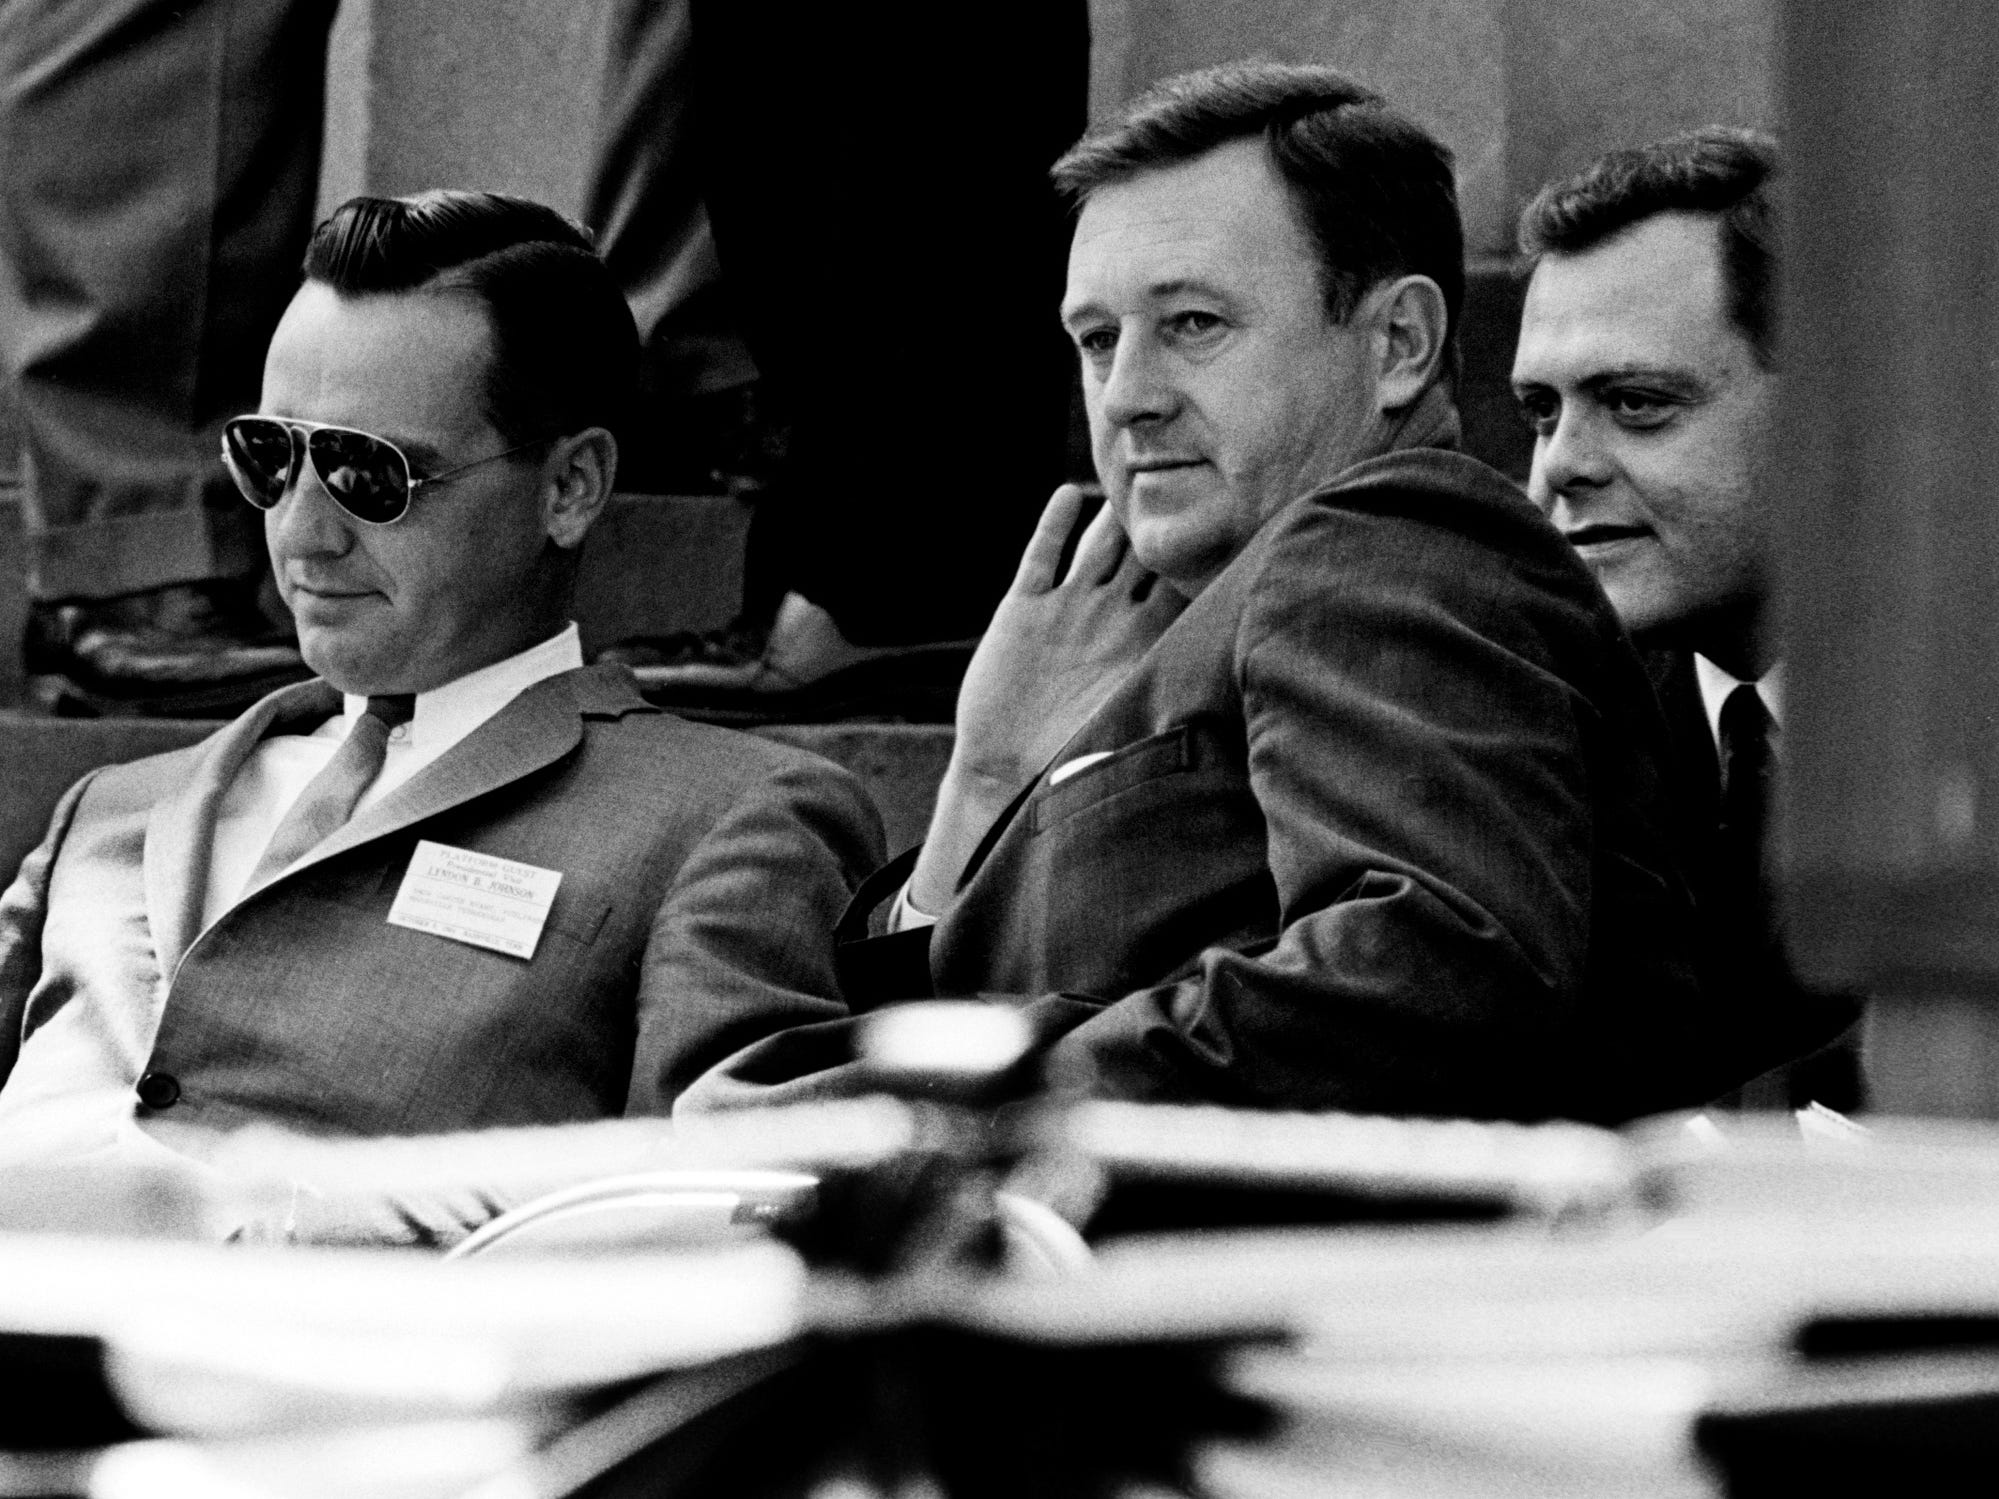 Amon Carter Evans, left, publisher, and John Seigenthaler, editor of The Tennessean, wait for President Lyndon B. Johnson's campaign speech at Memorial Square on Oct. 9, 1964.